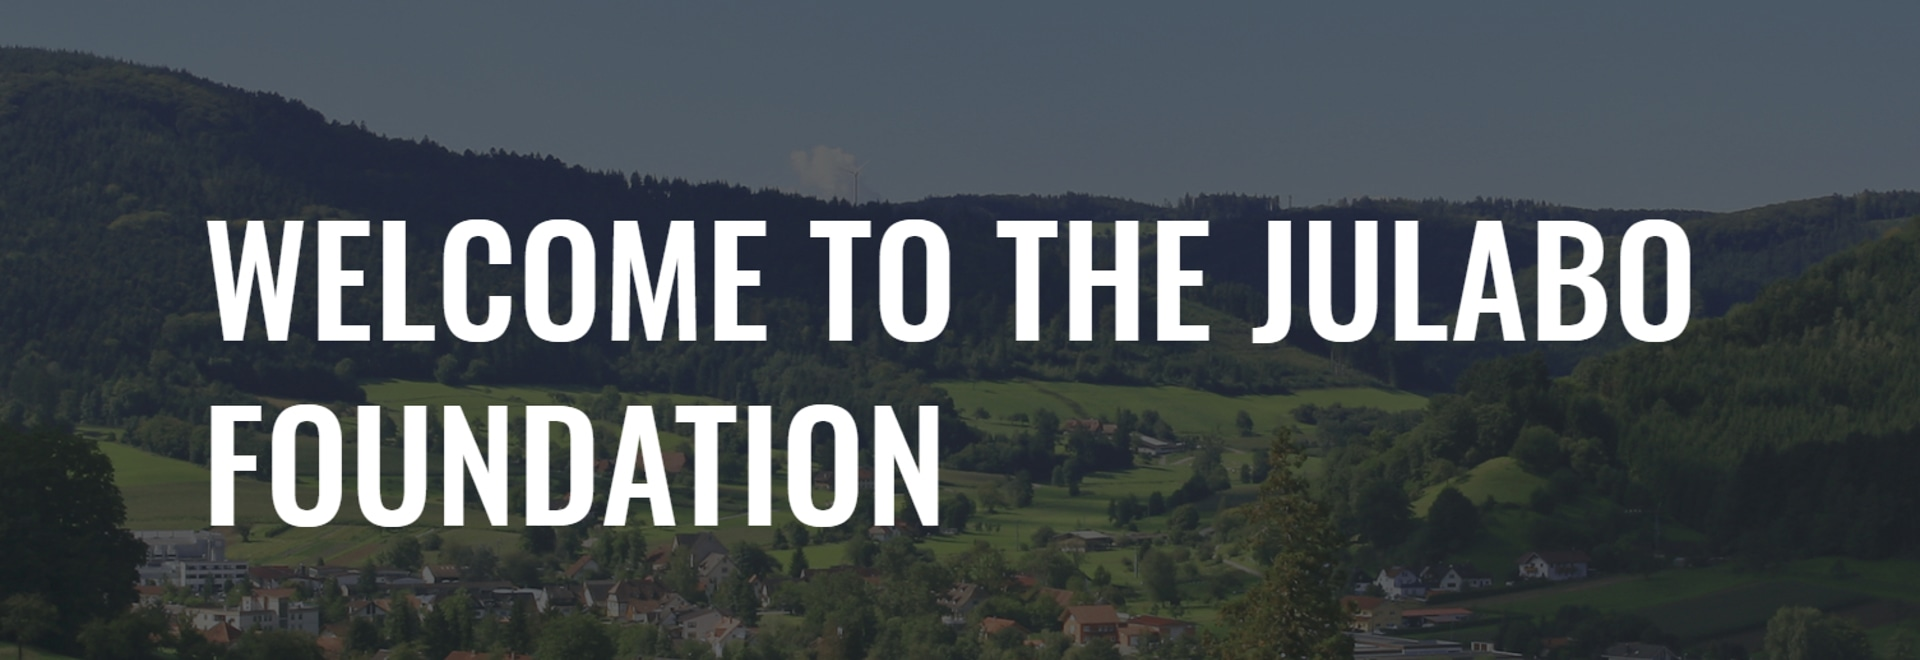 WELCOME TO THE JULABO FOUNDATION